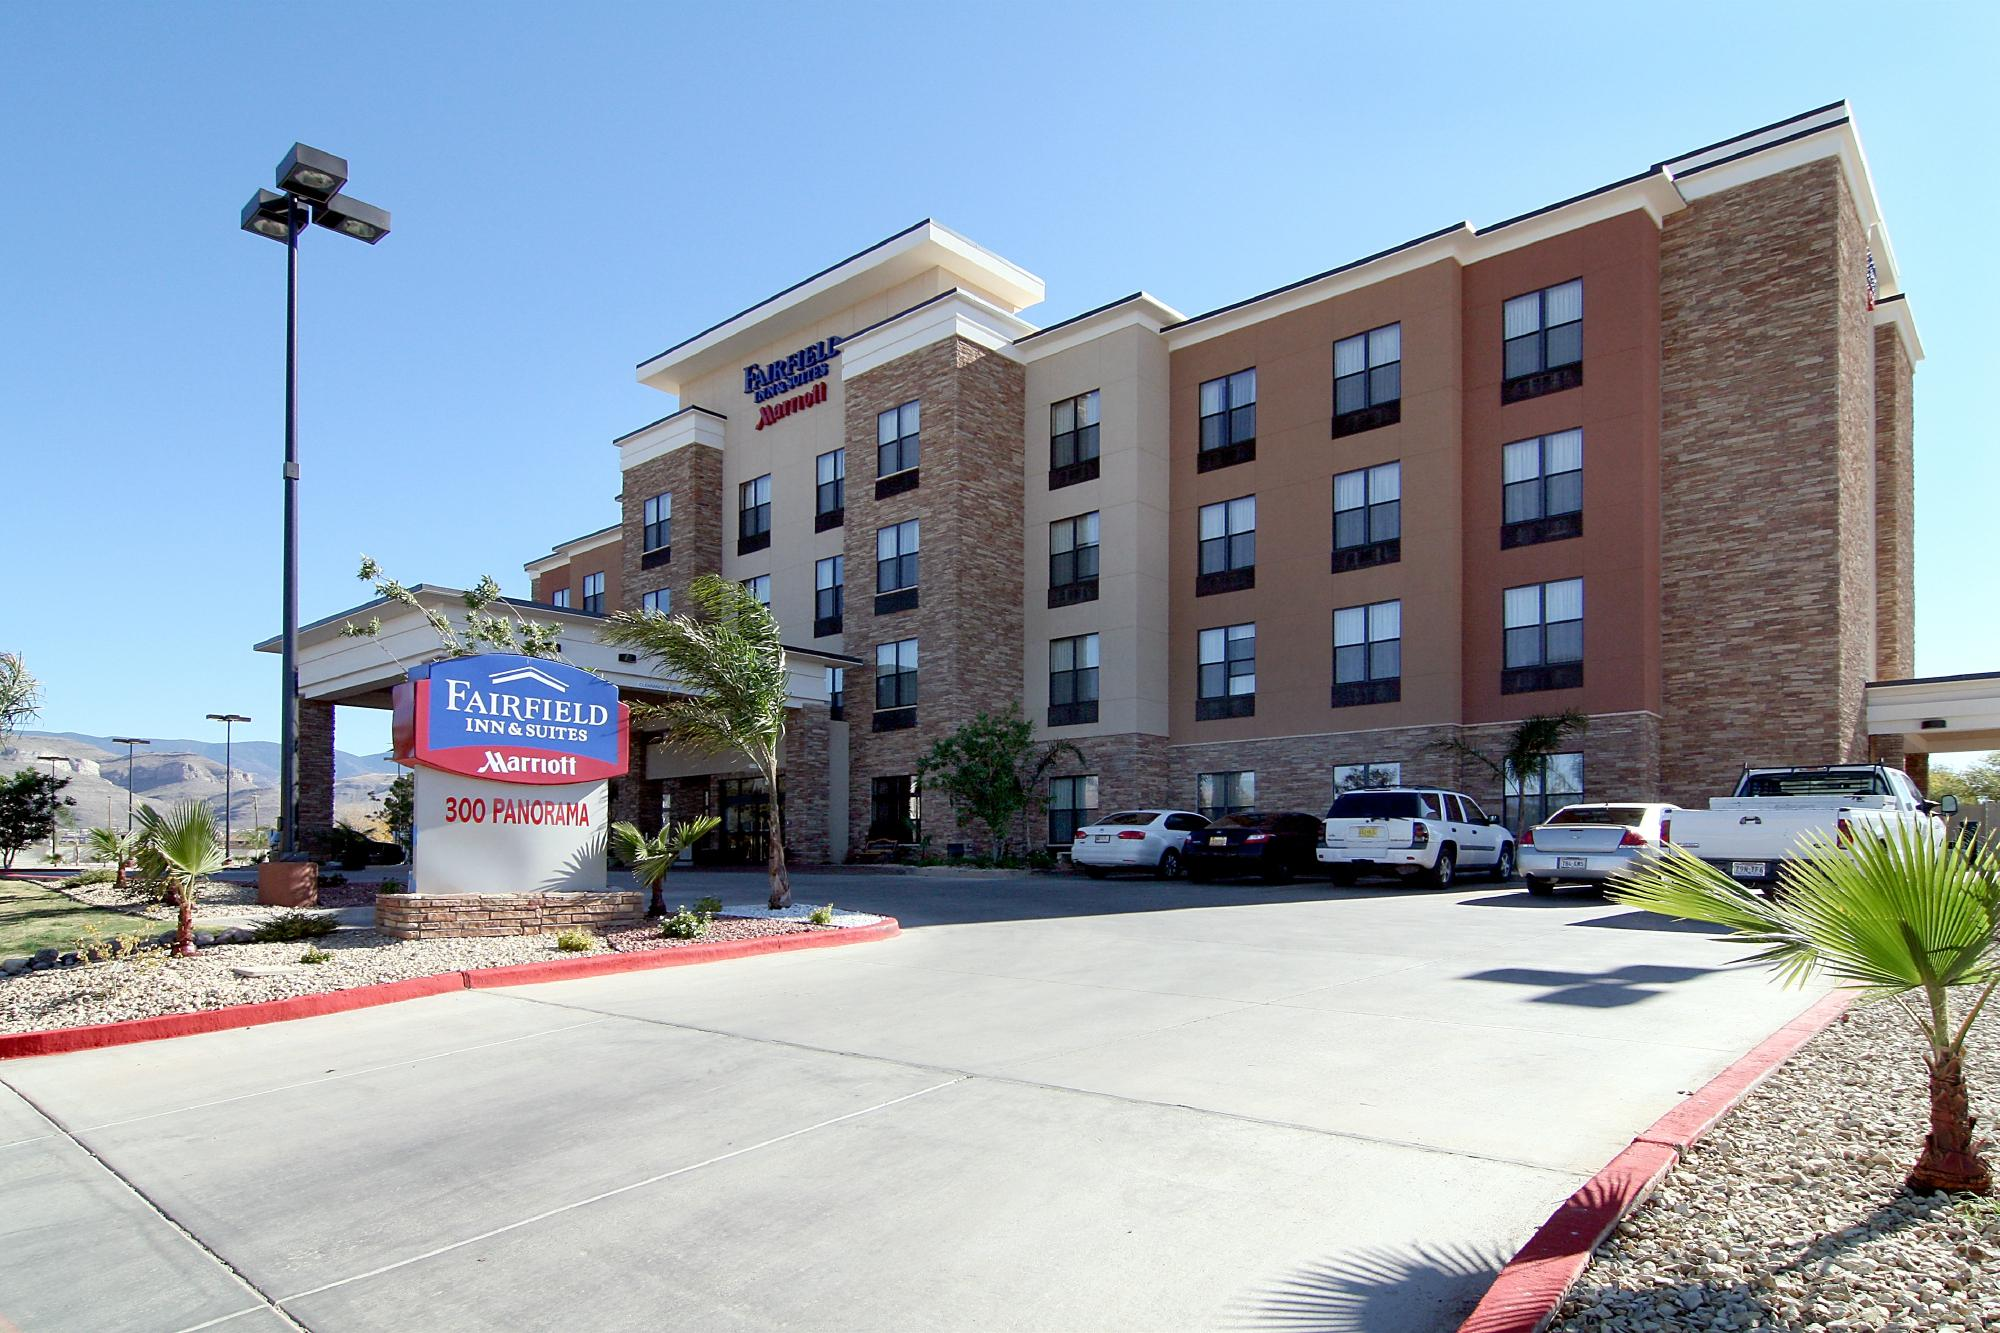 Fairfield Inn & Suites Alamogordo